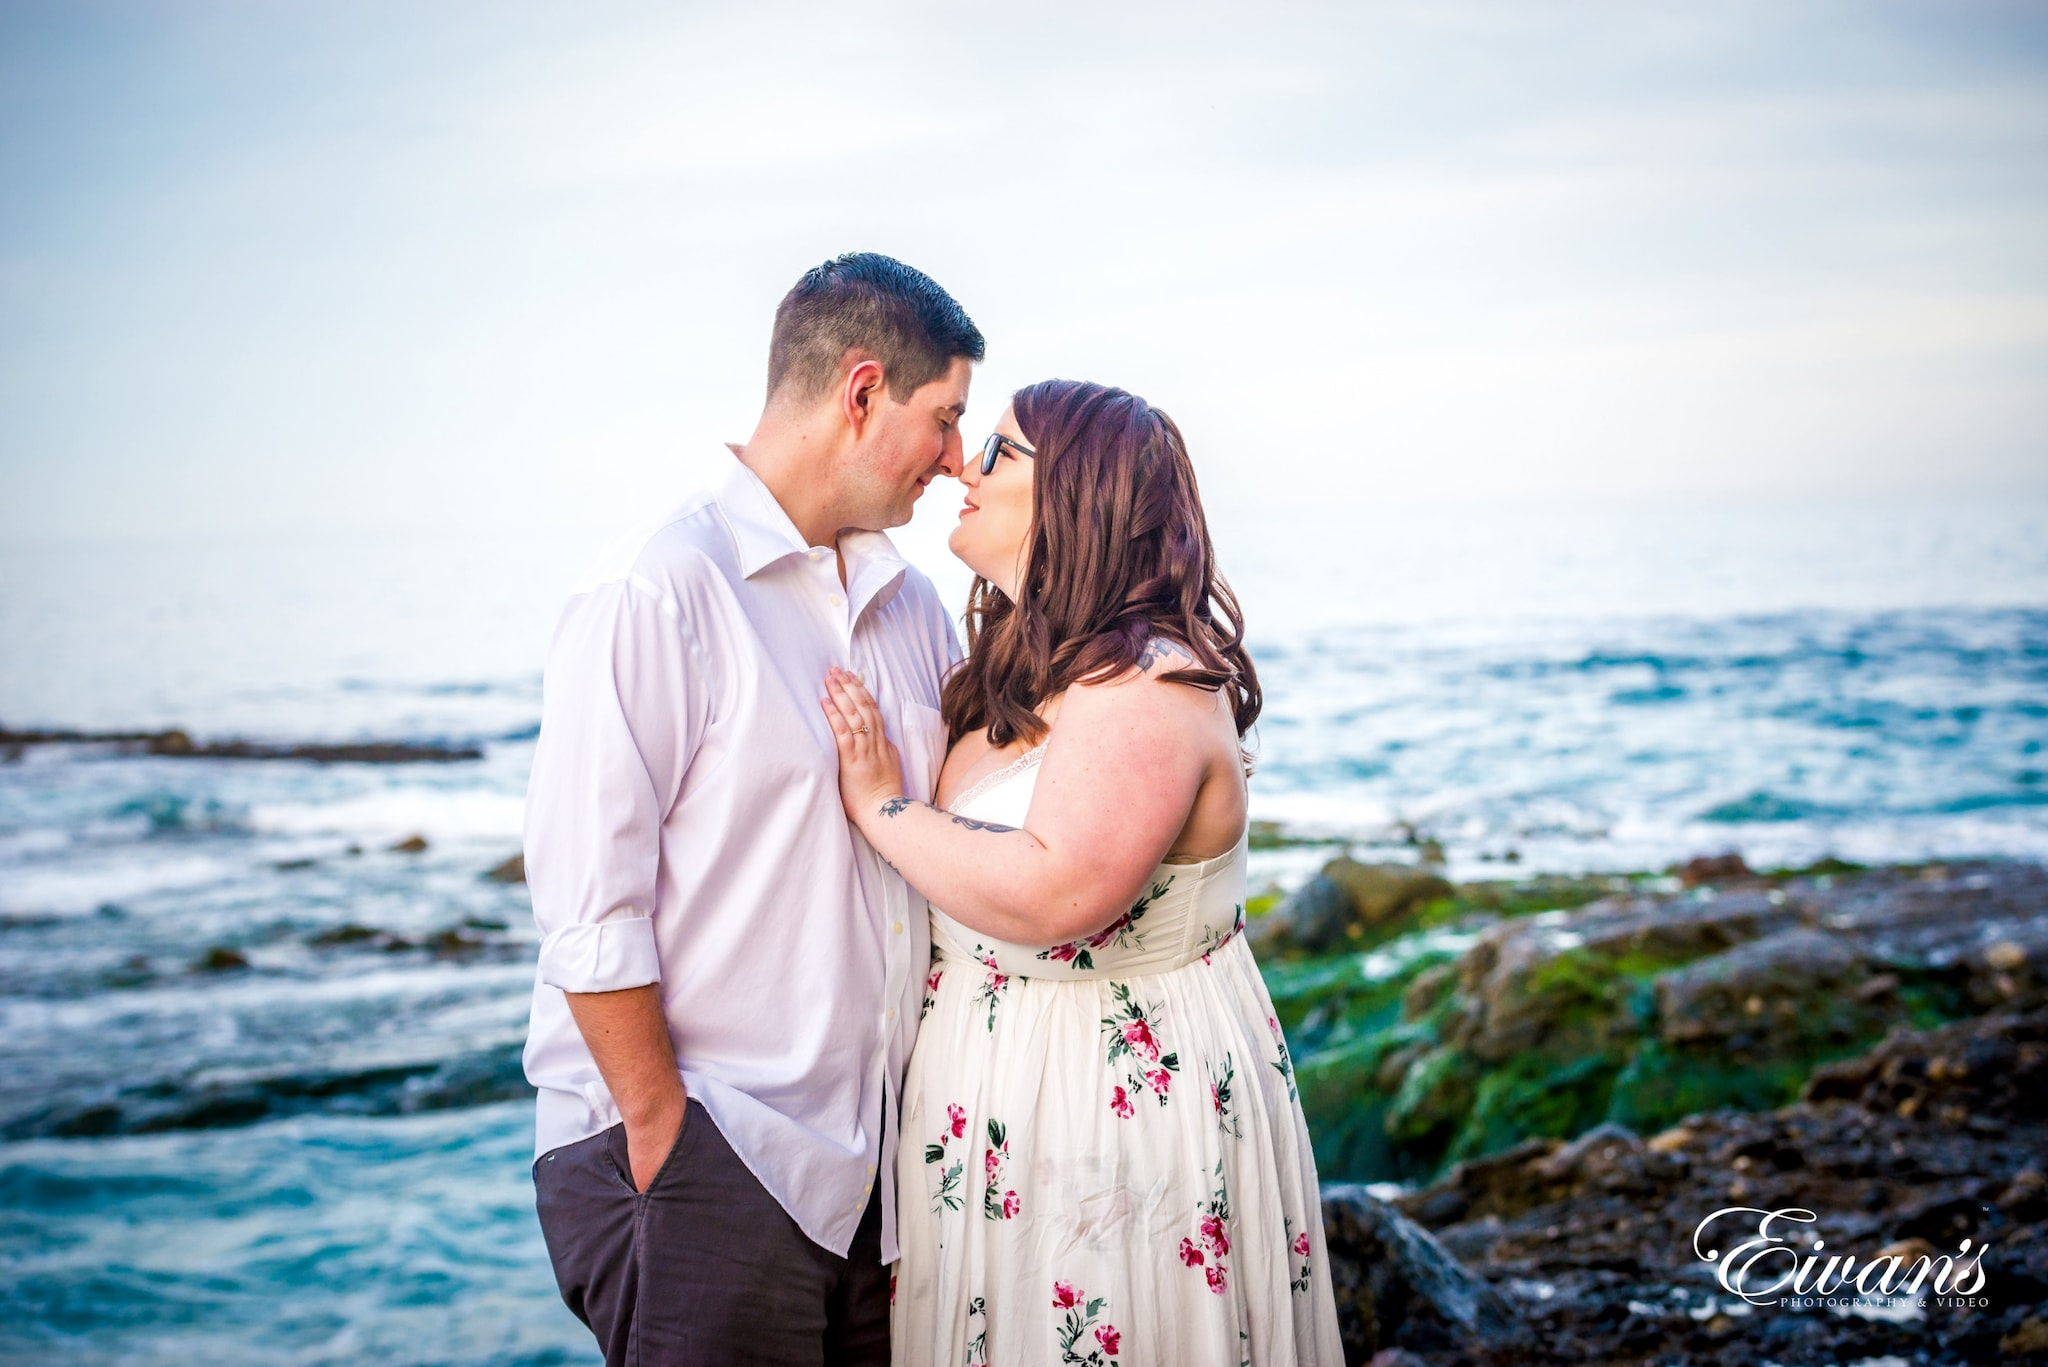 man and woman kissing near body of water during daytime